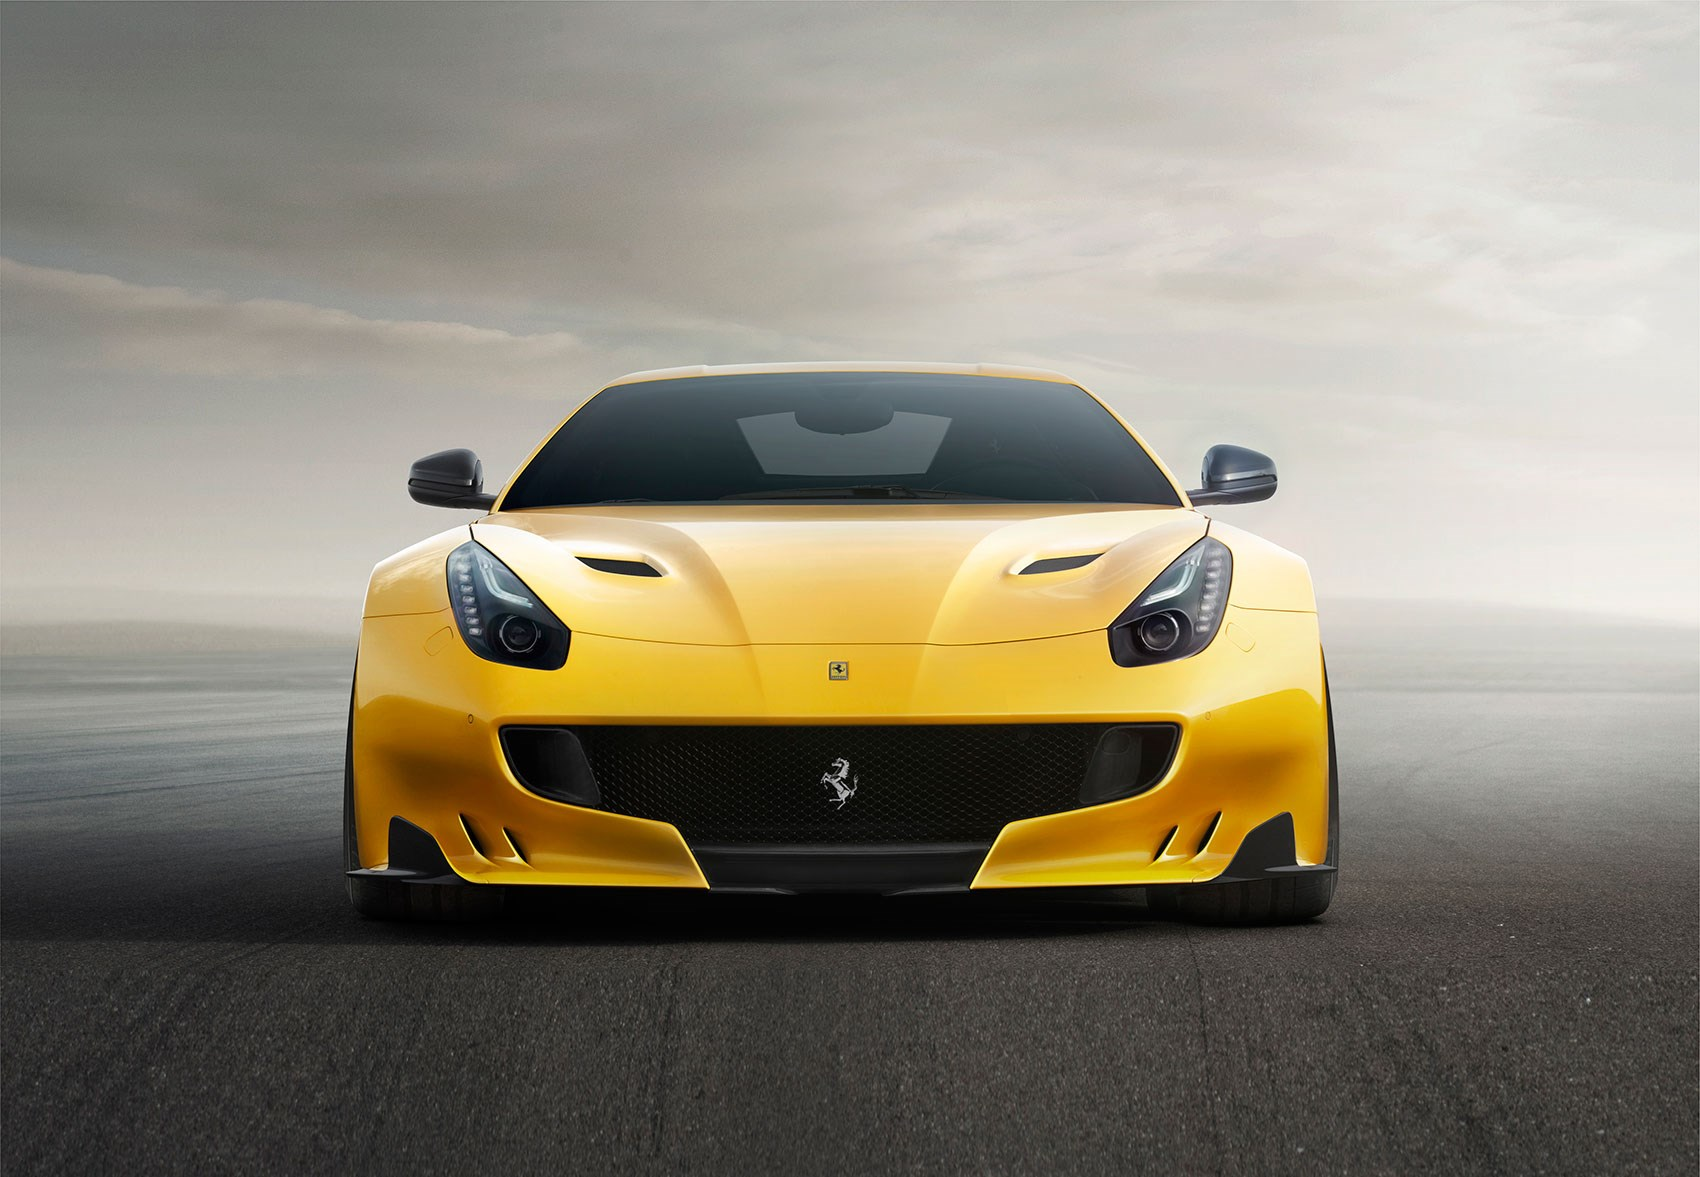 Ferrari First Official Pictures  Car News by CAR Magazine